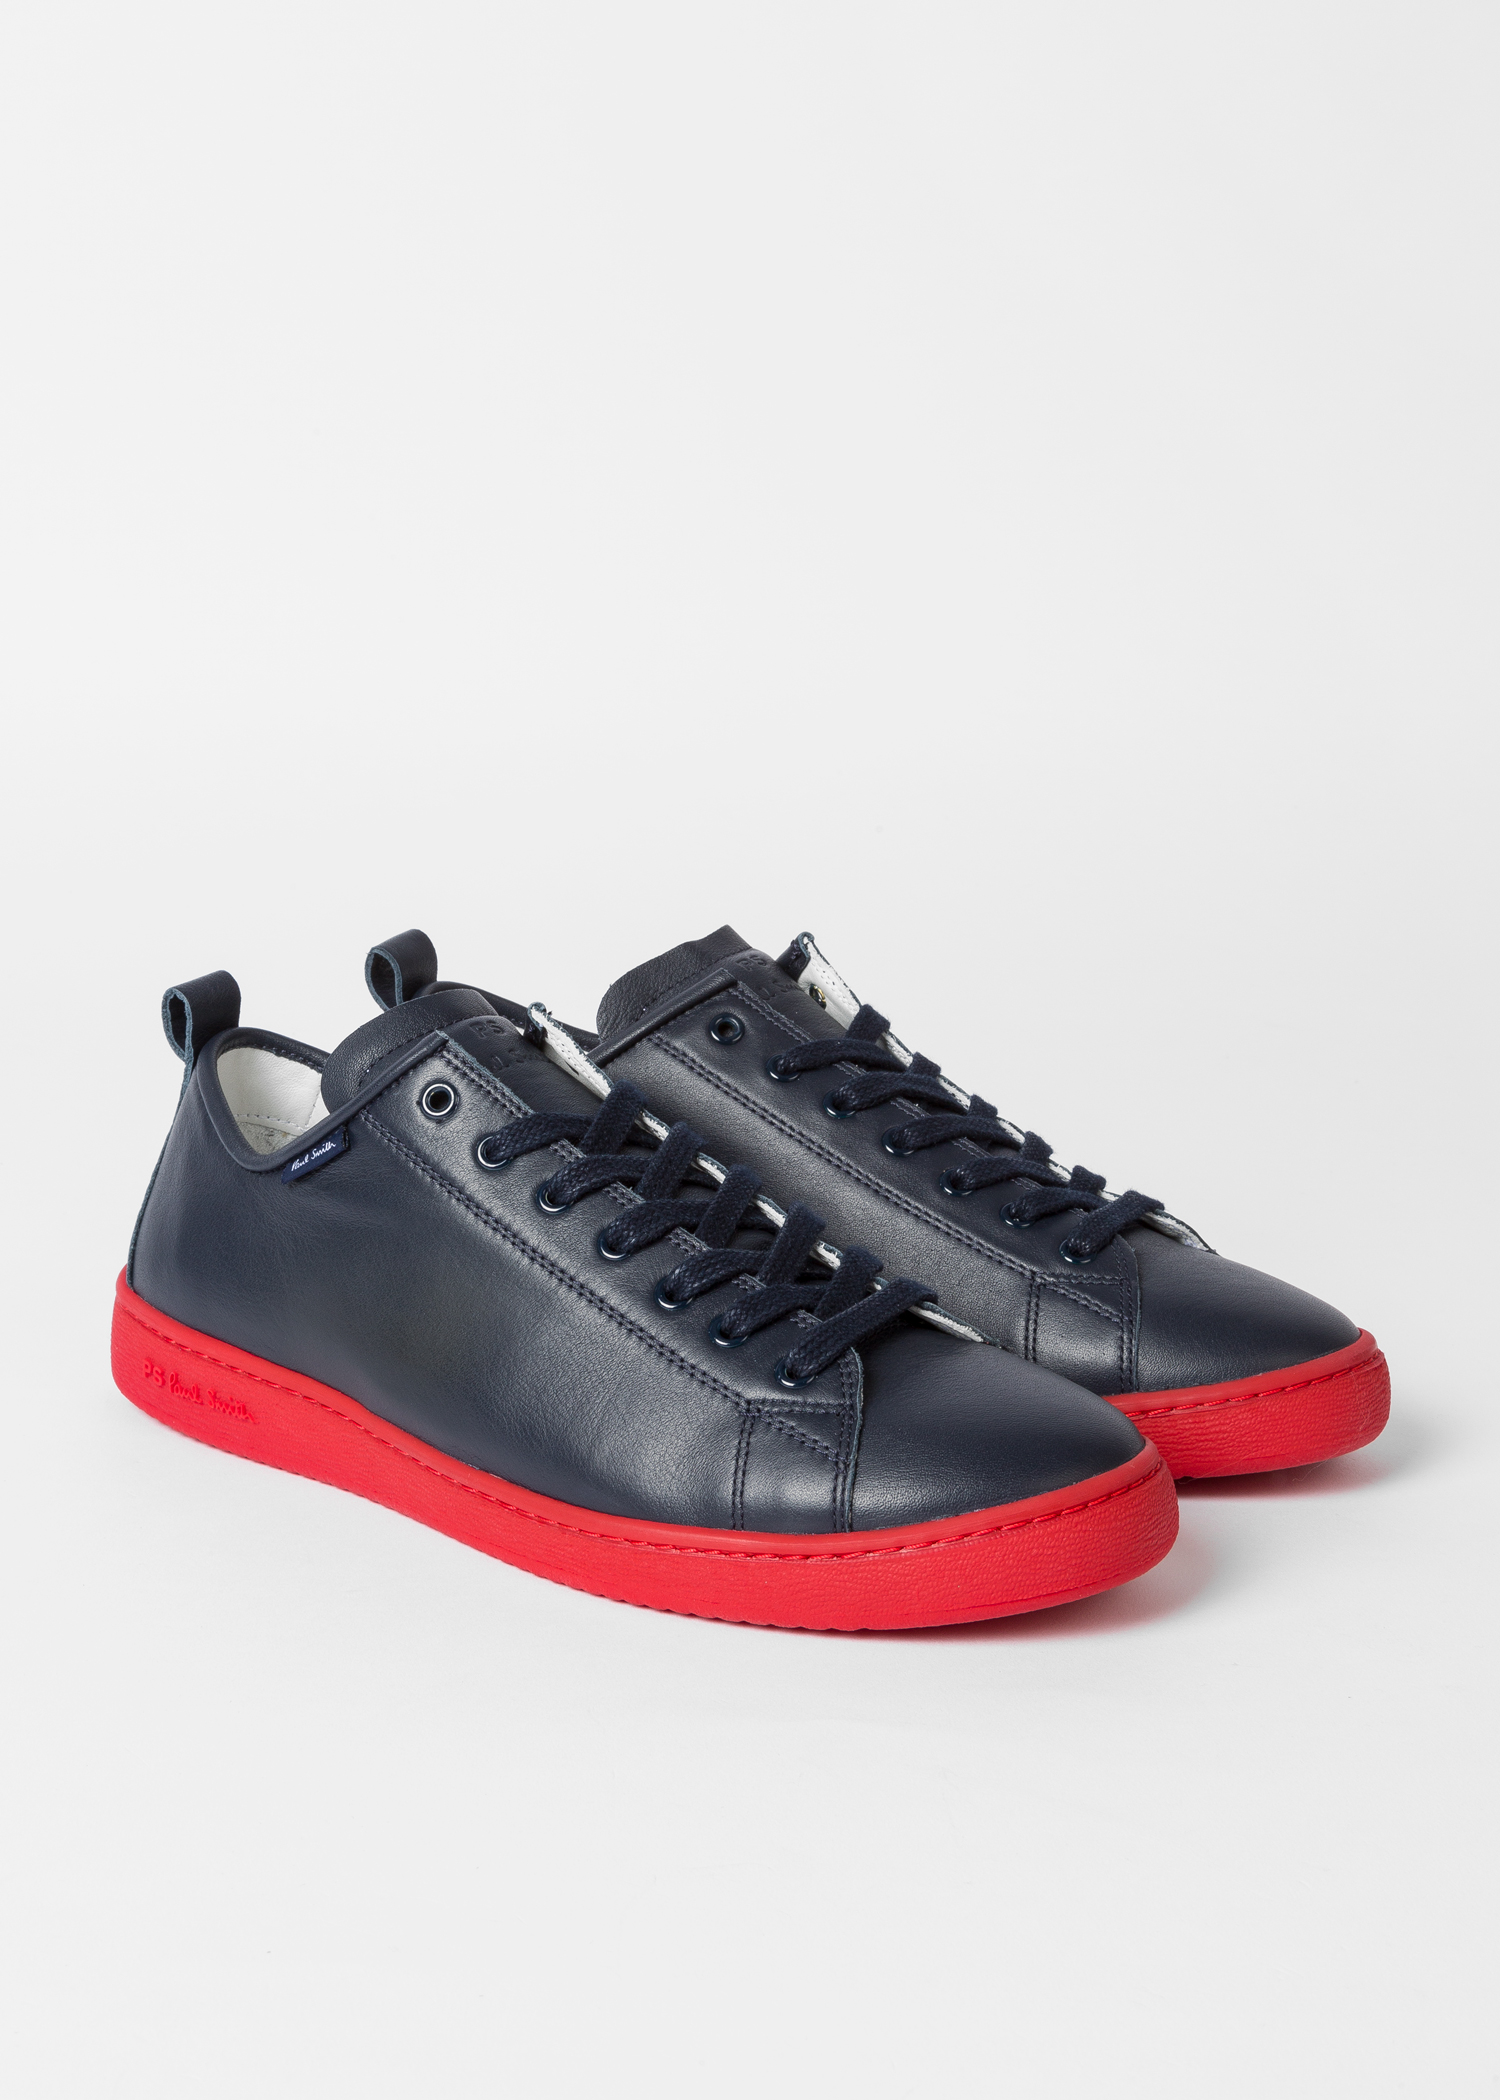 los angeles 1ec93 627ac Men's Navy Leather 'Miyata' Trainers With Red Soles